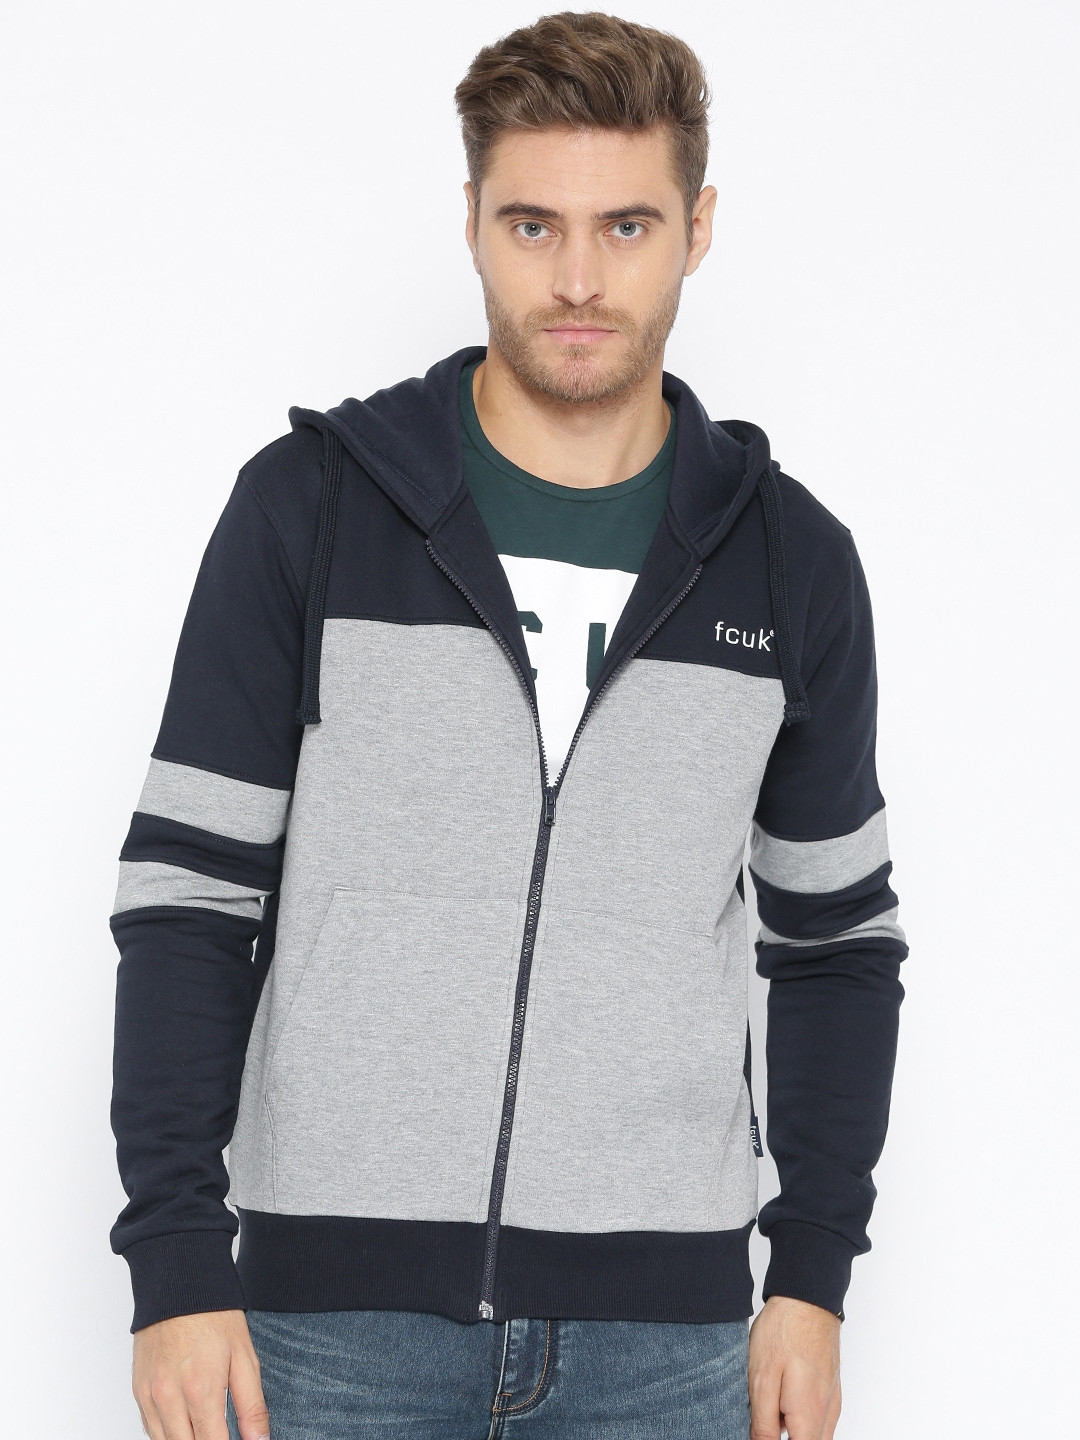 2a5545963 French Connection Men Sweatshirts Size G - Buy French Connection Men  Sweatshirts Size G online in India